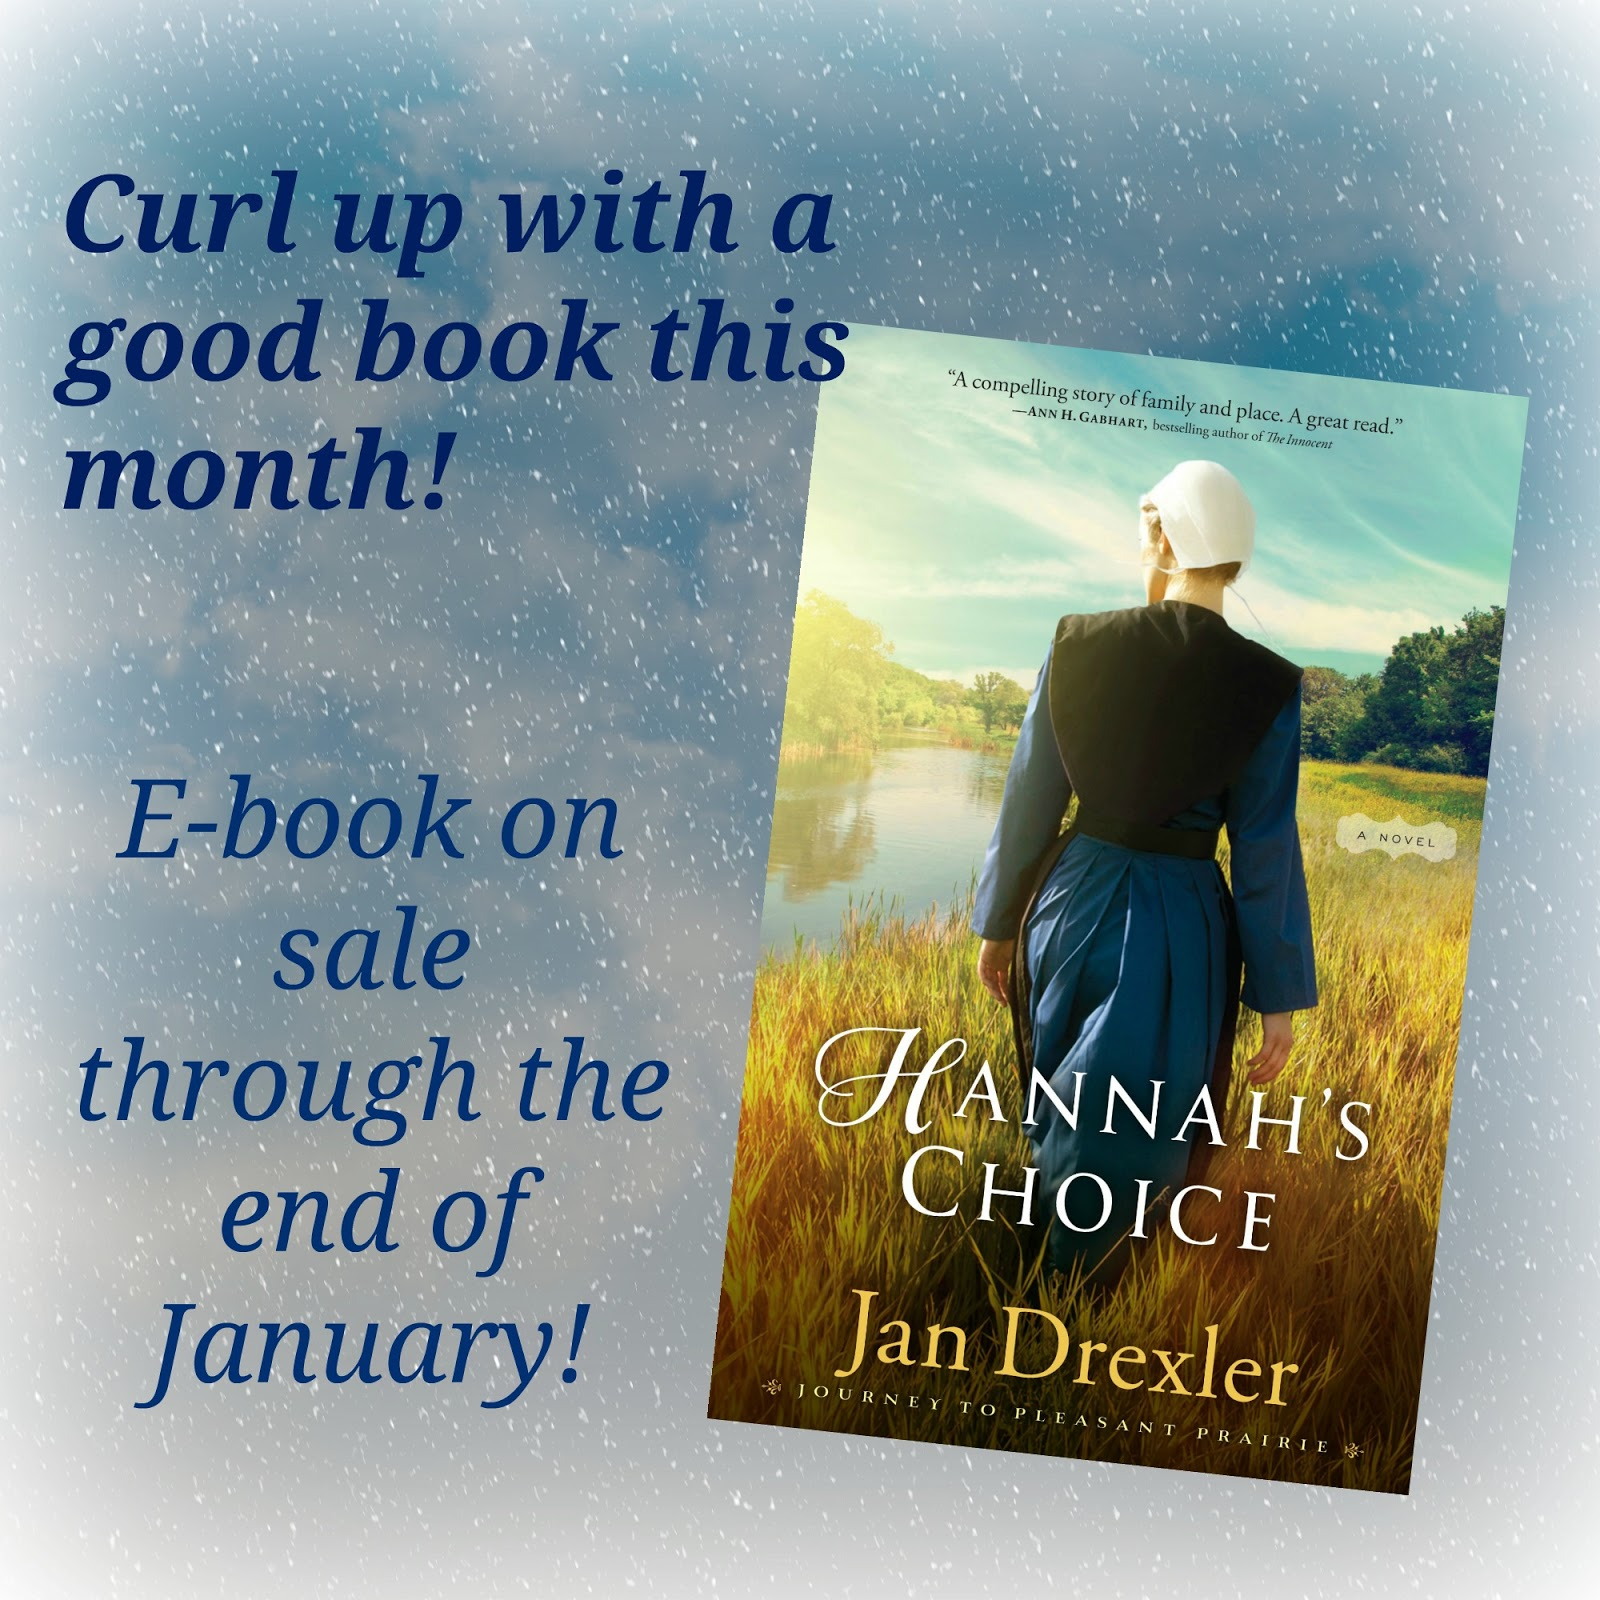 ... Journey to Pleasant Prairie series is on sale! Pick up your e-book copy  of Hannah's Choice at your favorite on-line retailer (Barnes and Noble,  Amazon, ...